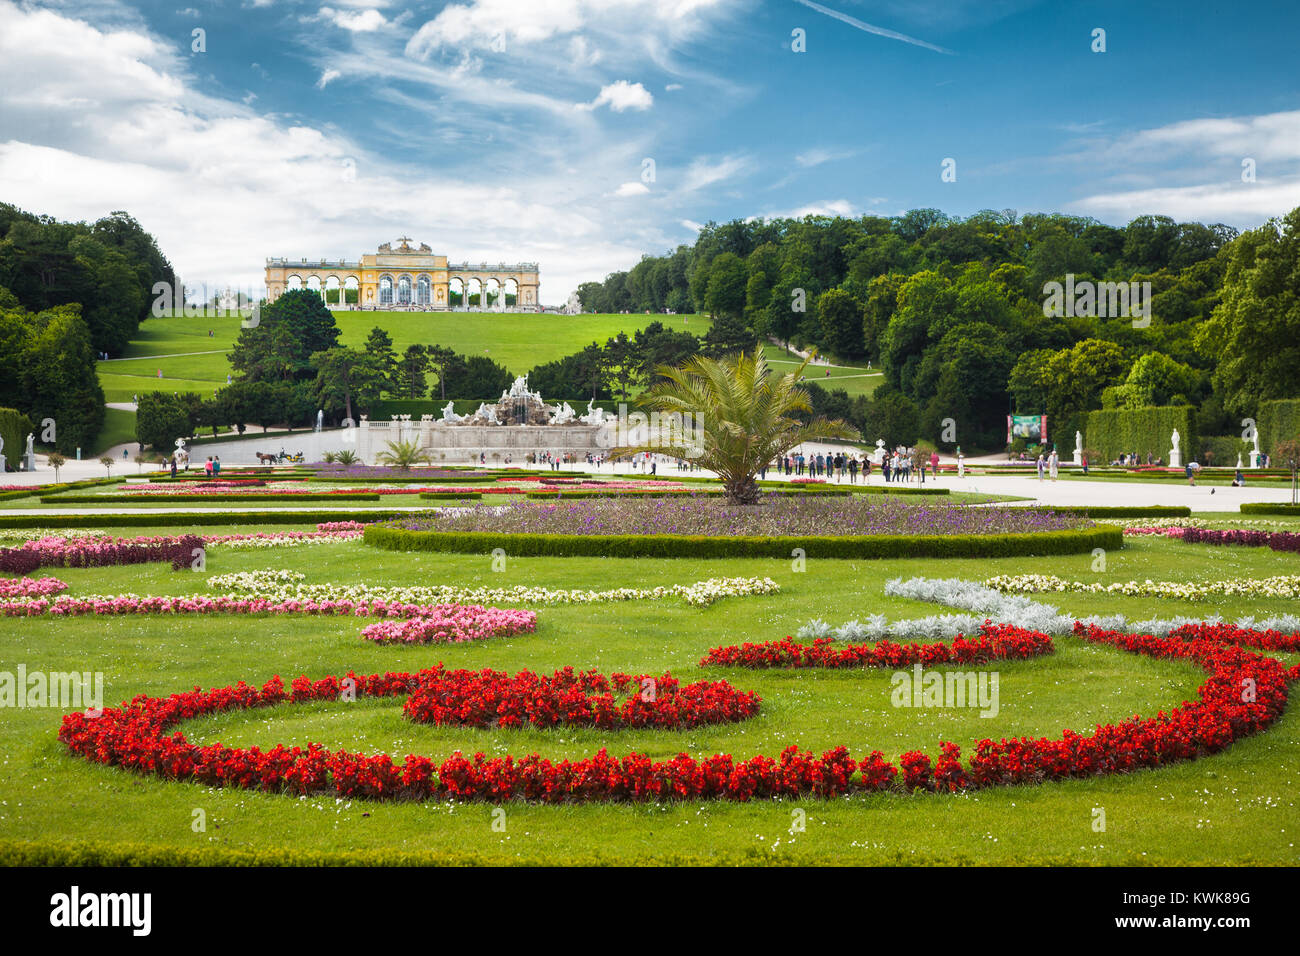 Classic view of scenic Great Parterre garden with Gloriette on a hill at famous Schonbrunn Palace on a beautiful - Stock Image